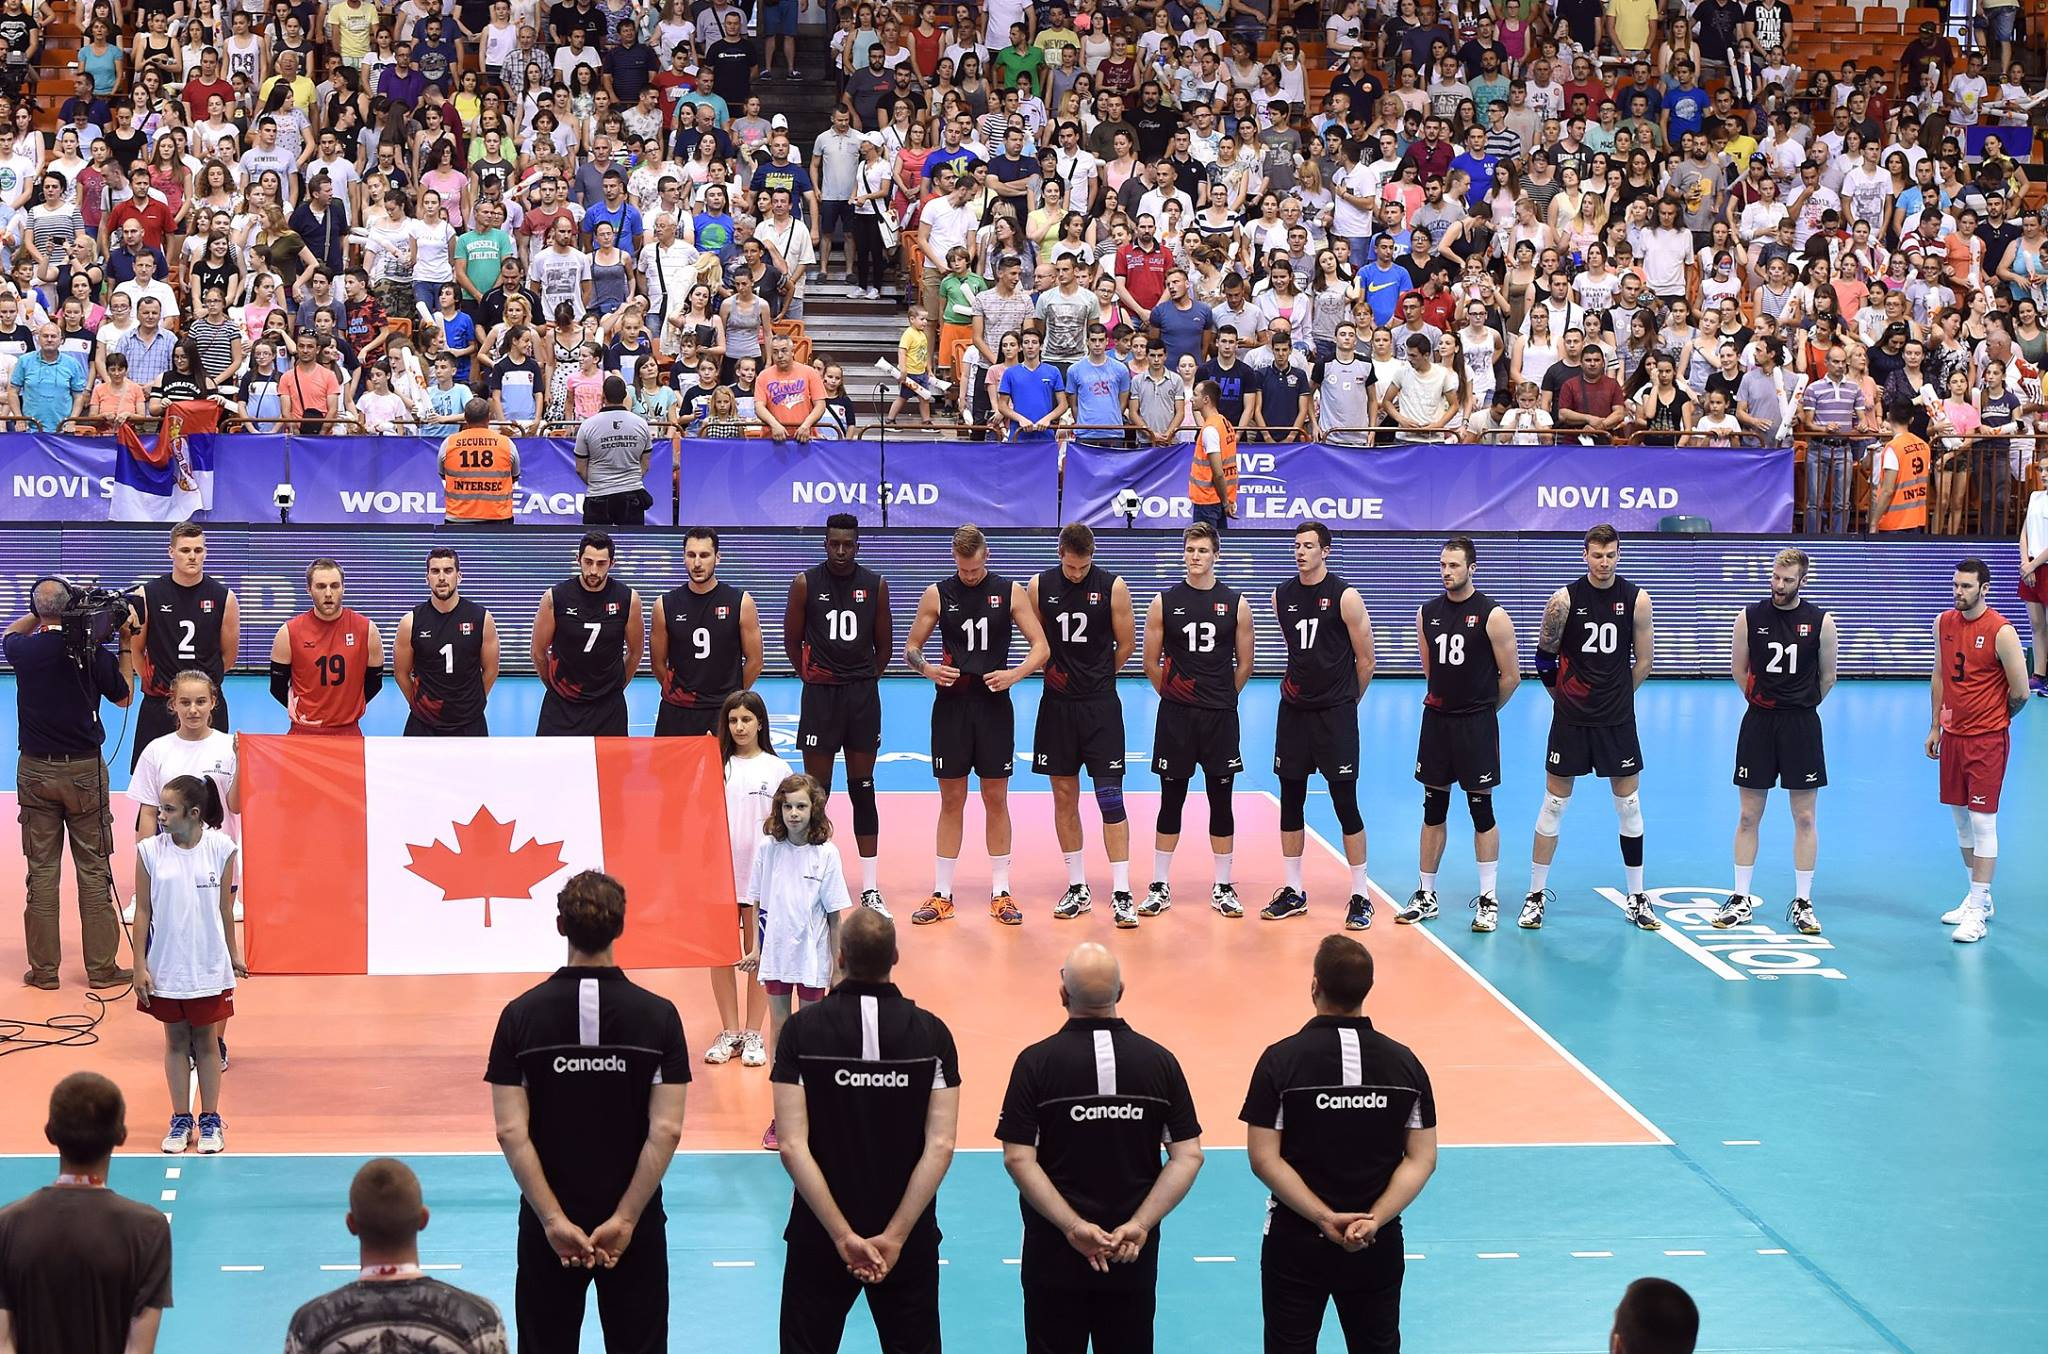 Canada FIVB Volleyball World League Matches: June 2 - 4, 2017